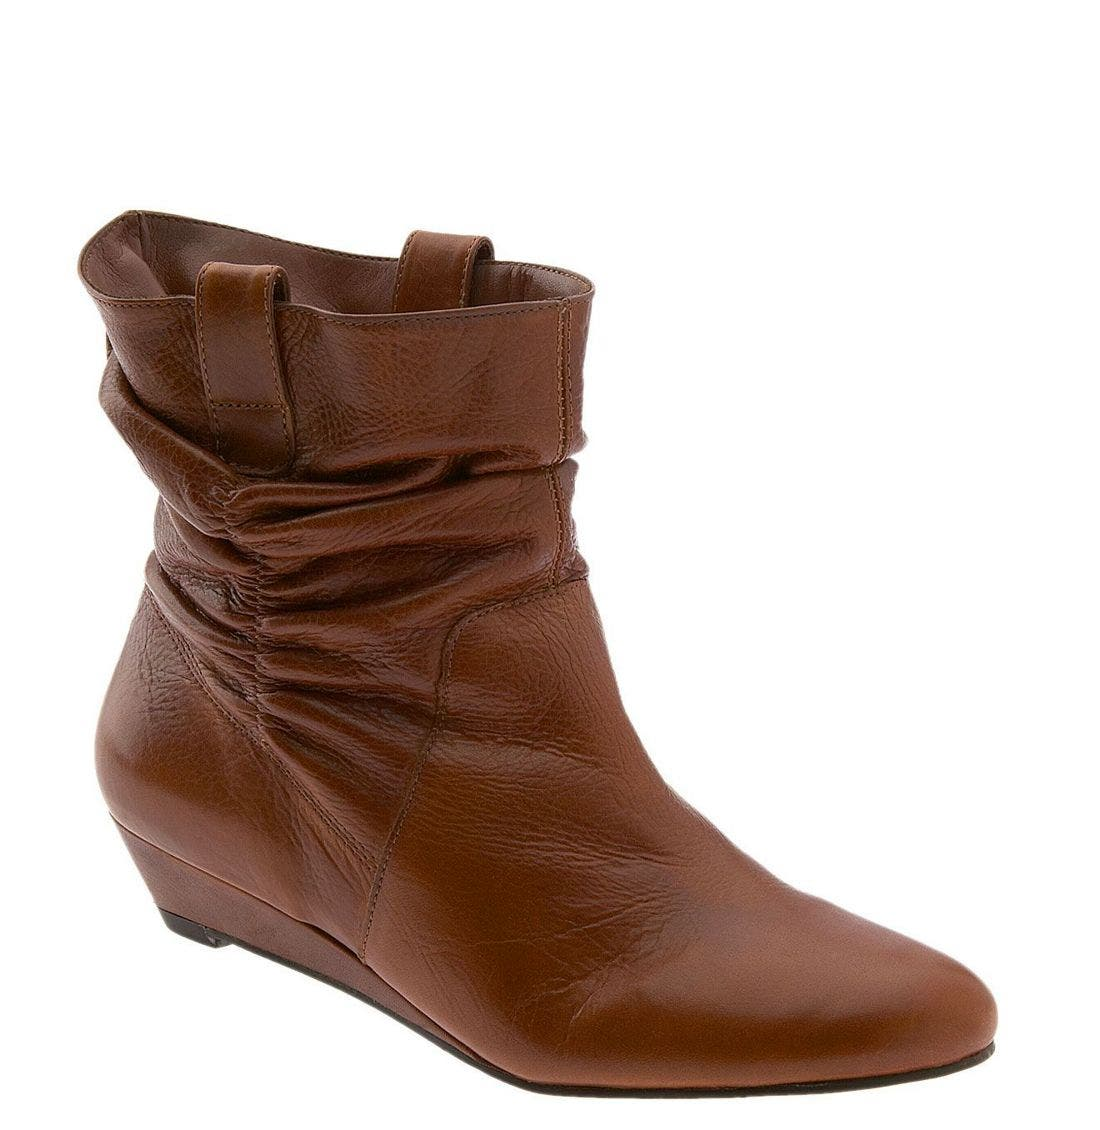 Alternate Image 1 Selected - Steven by Steve Madden 'Insist' Ankle Boot